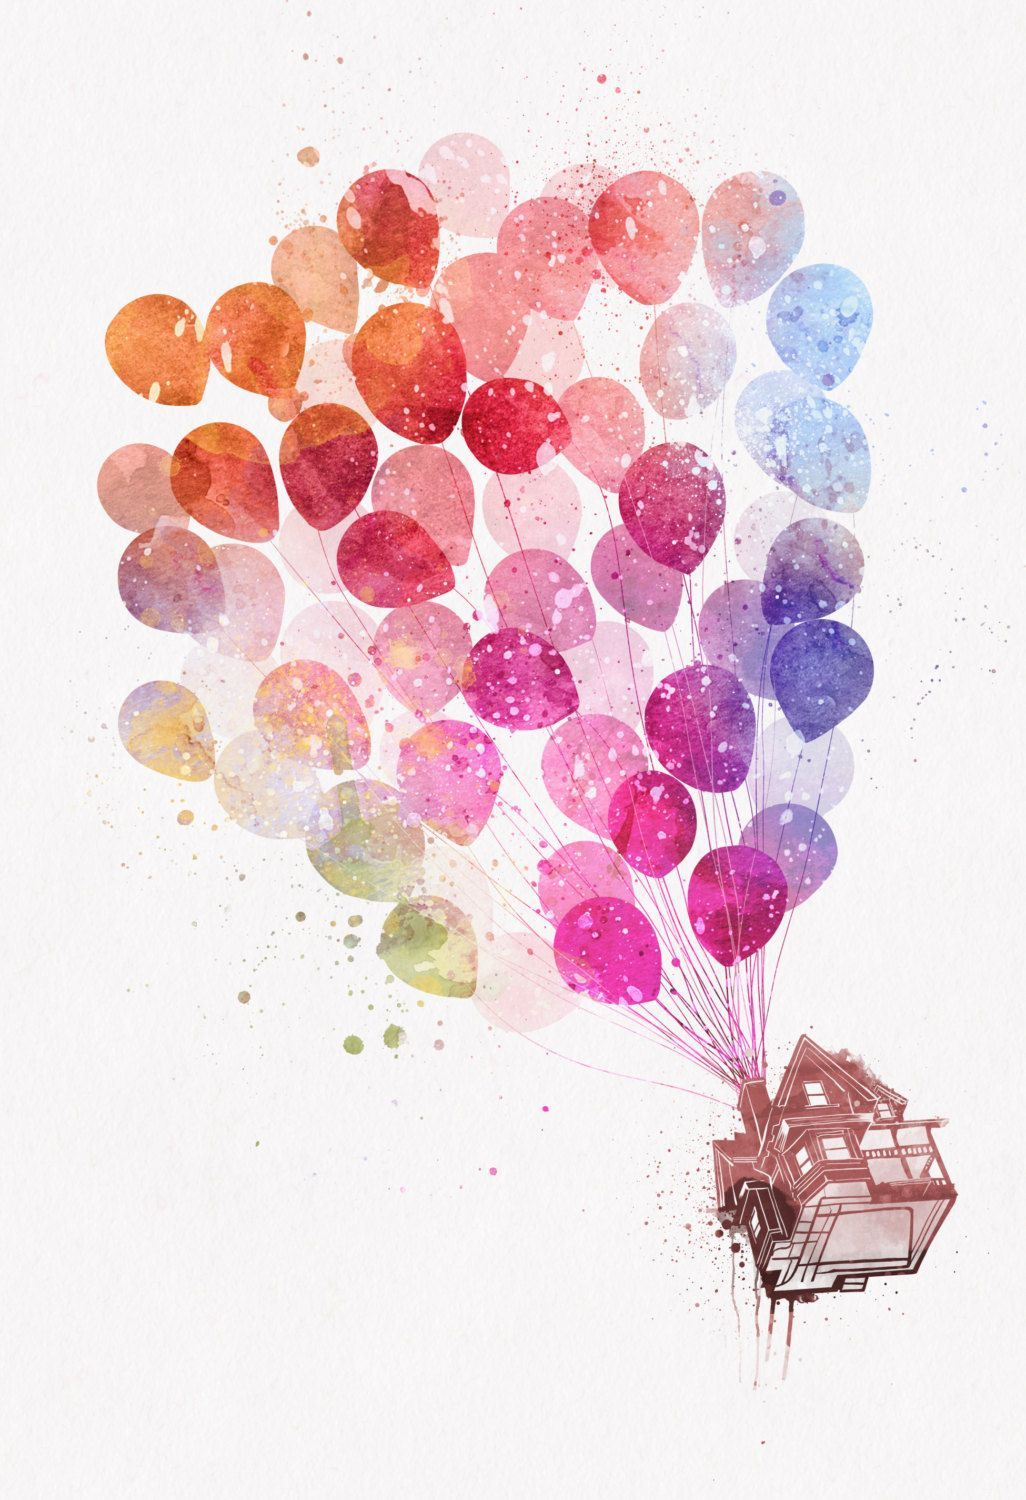 Disney Pixar Up Flying House With Balloons Watercolor Splatter Art